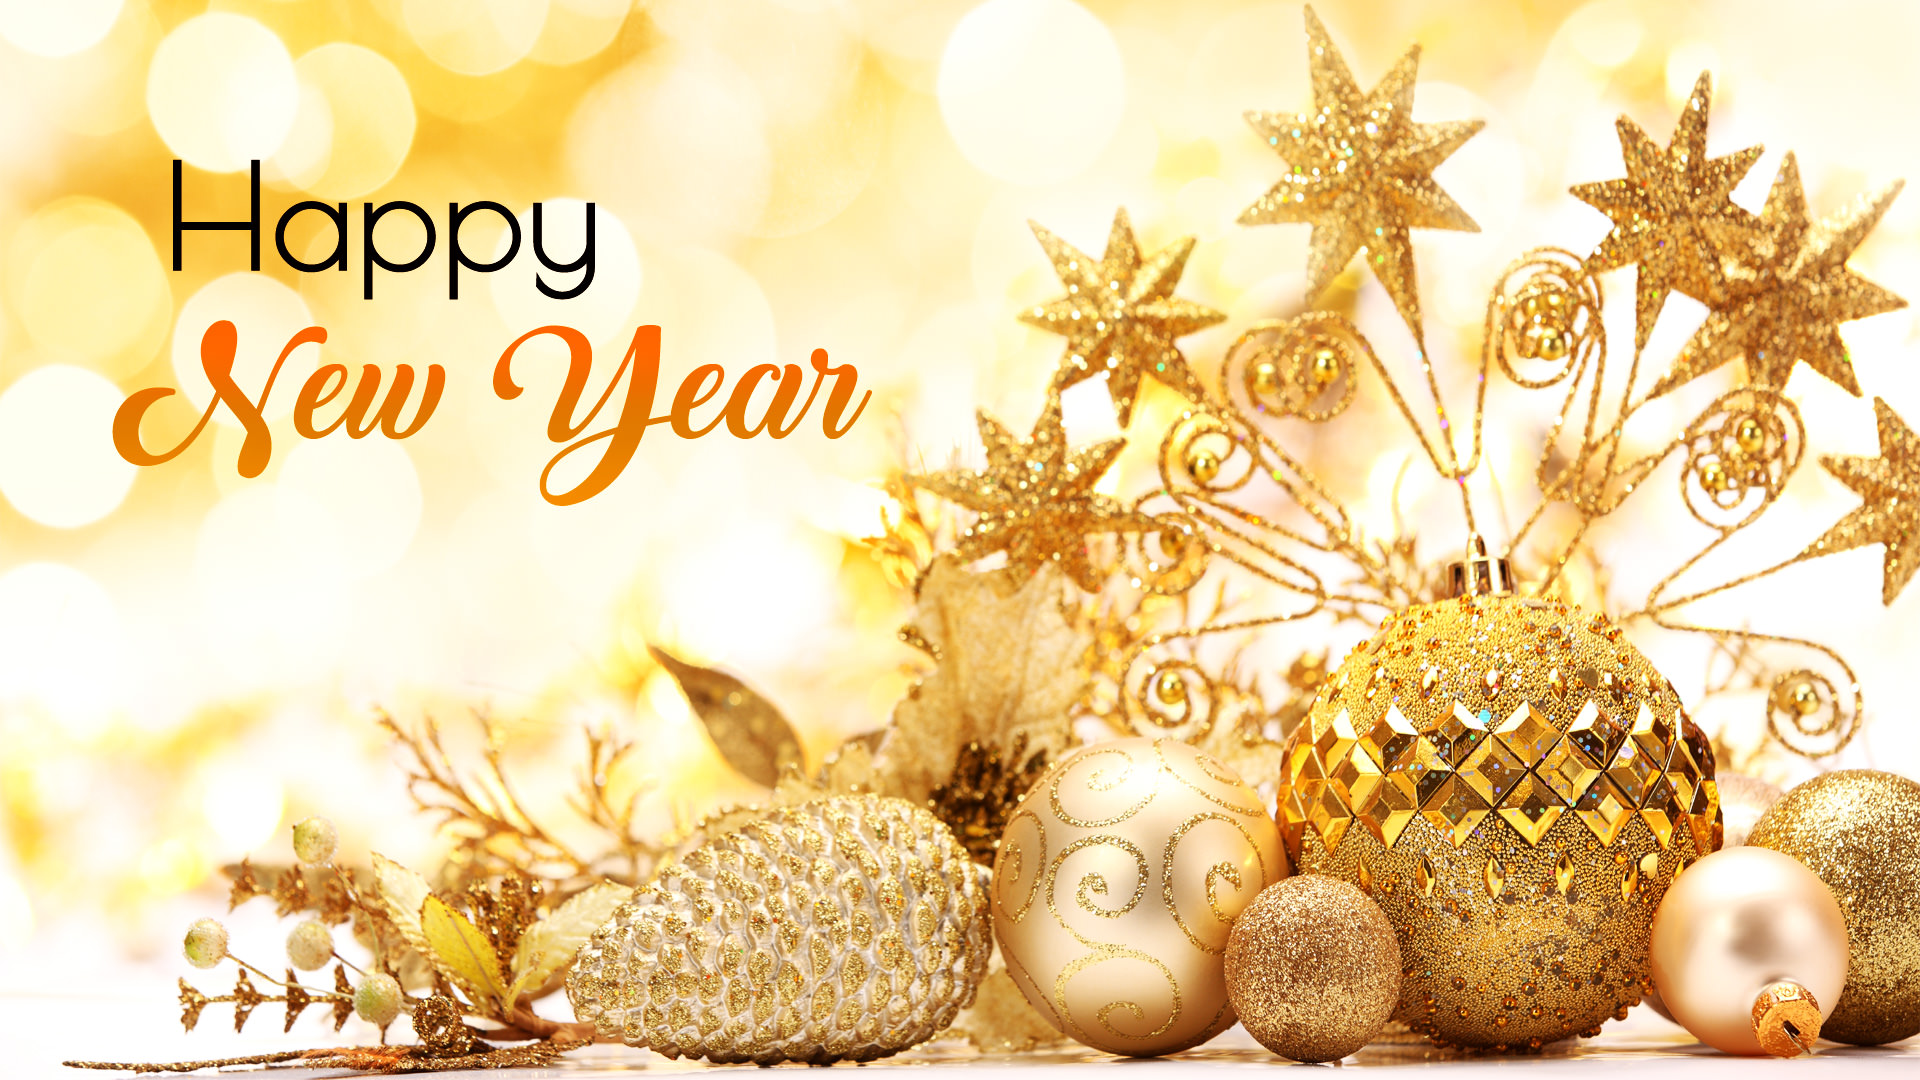 Special Happy New Year 2018 Wallpaper HD Greetings 1920x1080